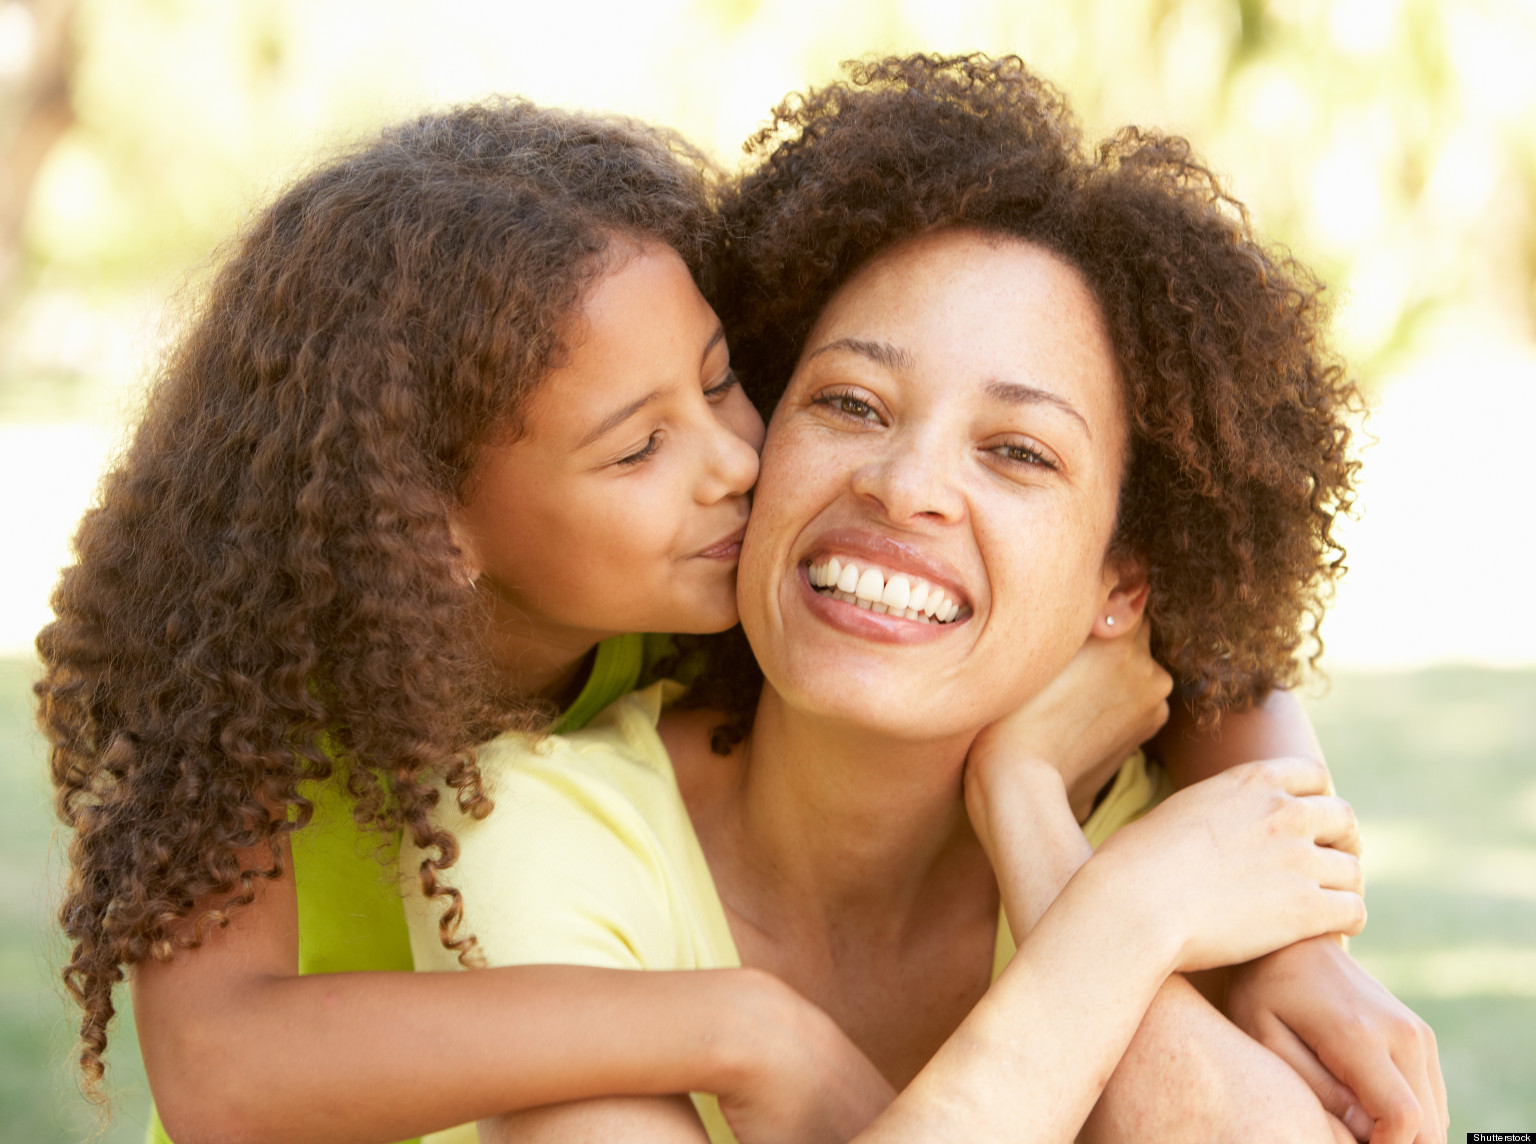 http://www.huffingtonpost.com/2013/05/08/mothers-day-gifts-for-sin_n_3239784.html